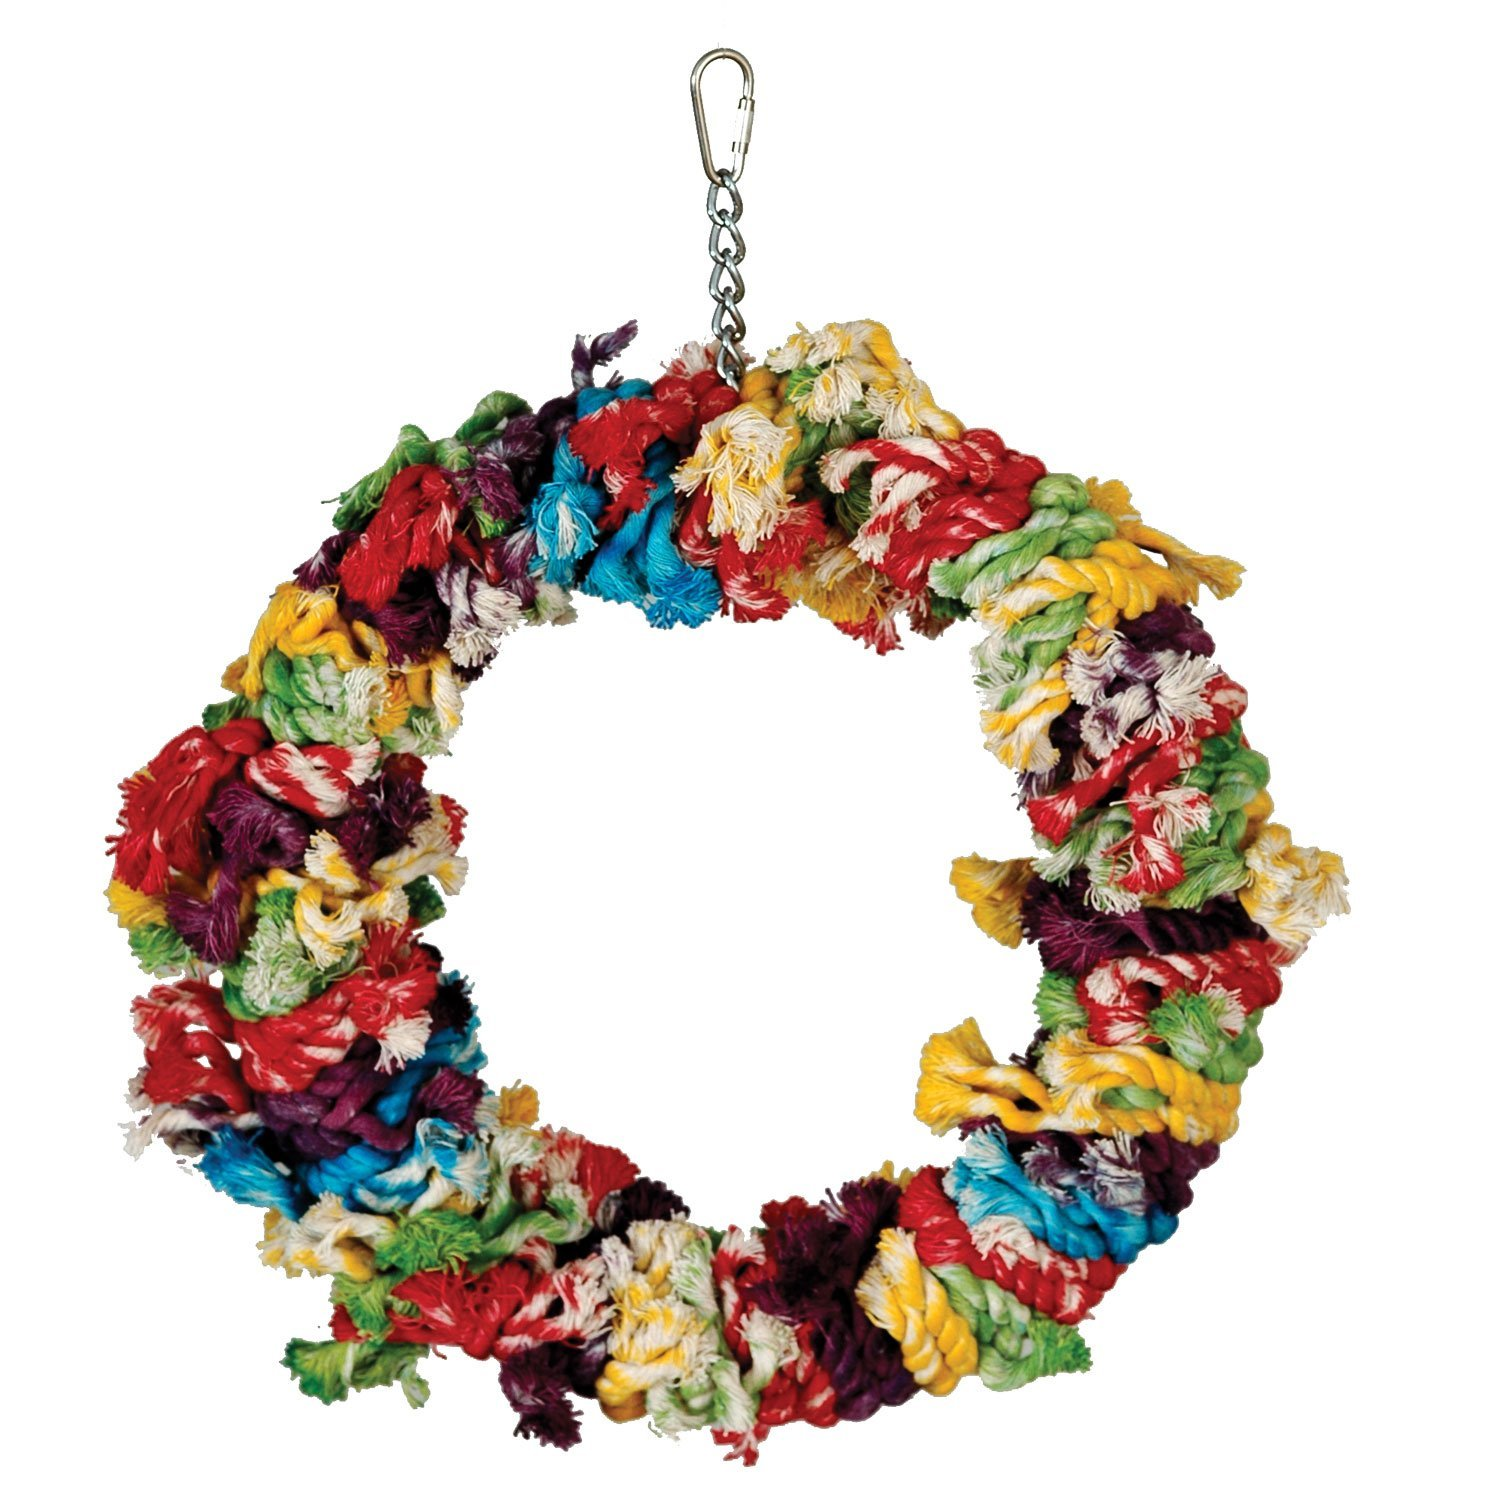 Paradise Toys Cotton Preening Ring, Colorful and Entertaining, Large, 15'' x 12'' by Paradise Toys